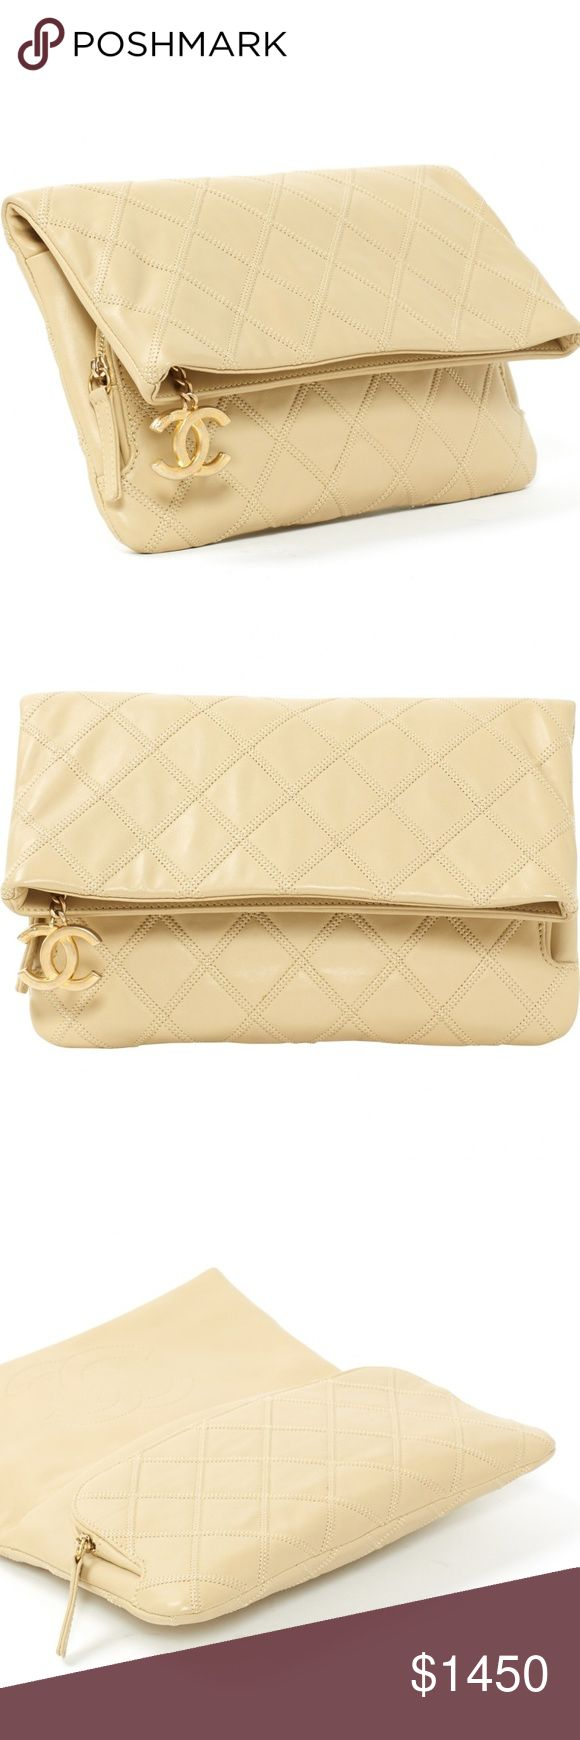 Beige Plain Leather CHANEL Clutch Bag Vintage beige Plain Leather CHANEL Clutch bag   Vintage - Super Rare 100% Authentic, serious inquiries only CHANEL Bags Clutches & Wristlets